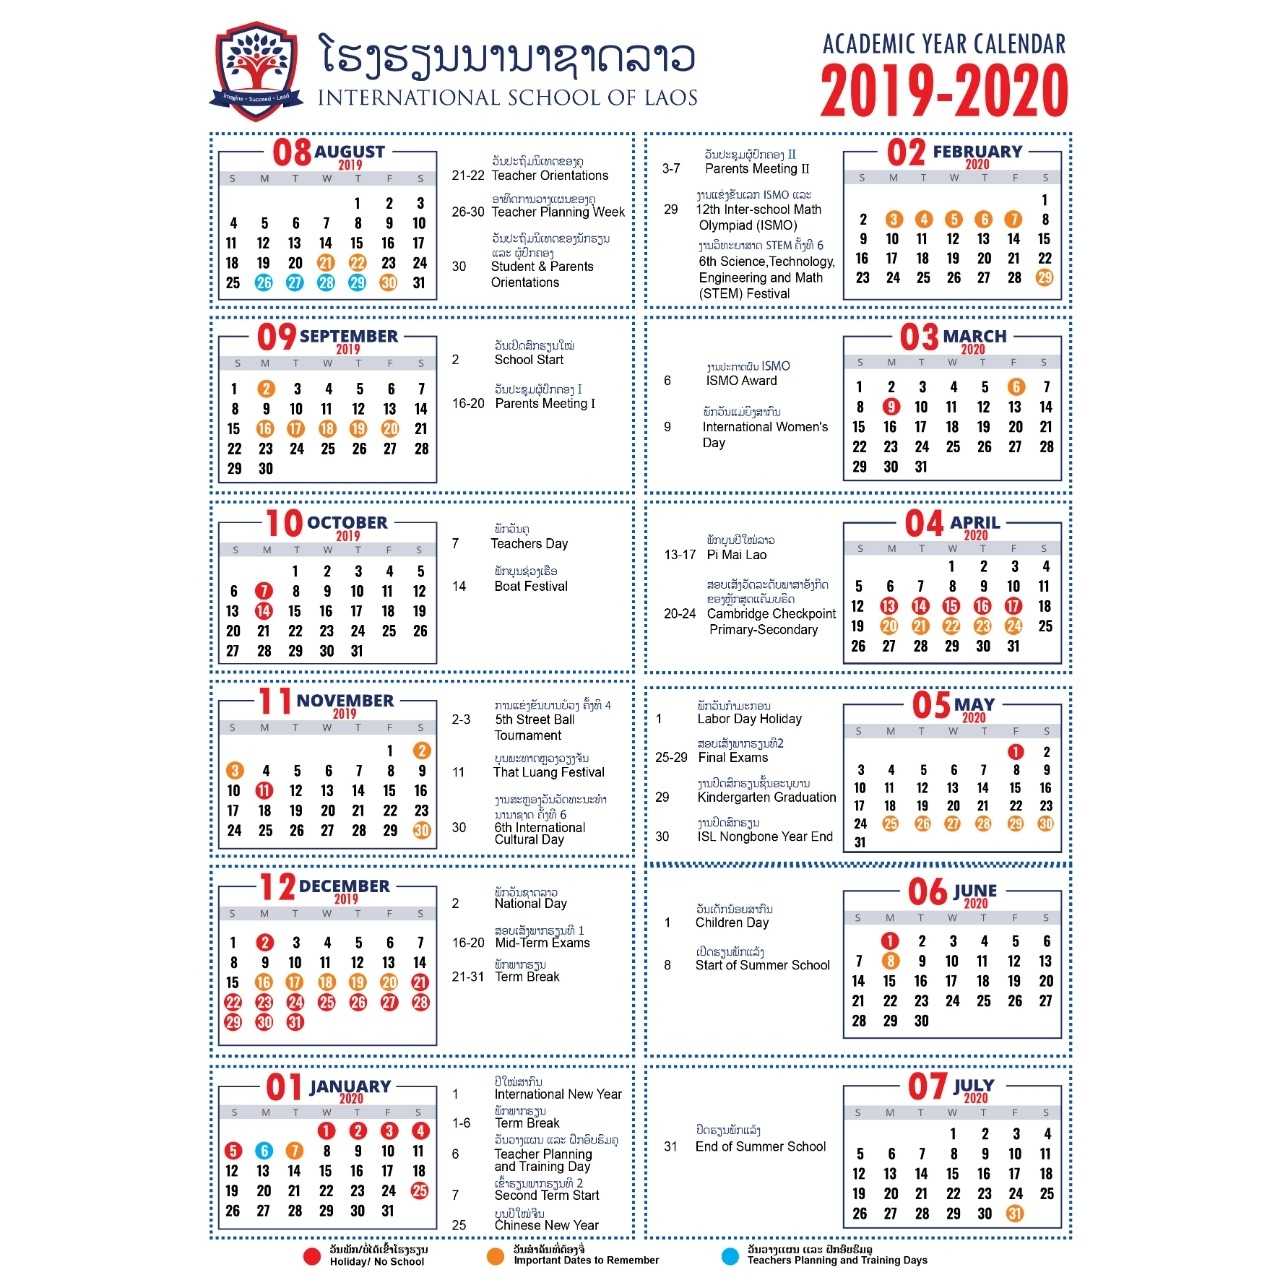 Academic Calendar 2019-2020 - International School Of Laos